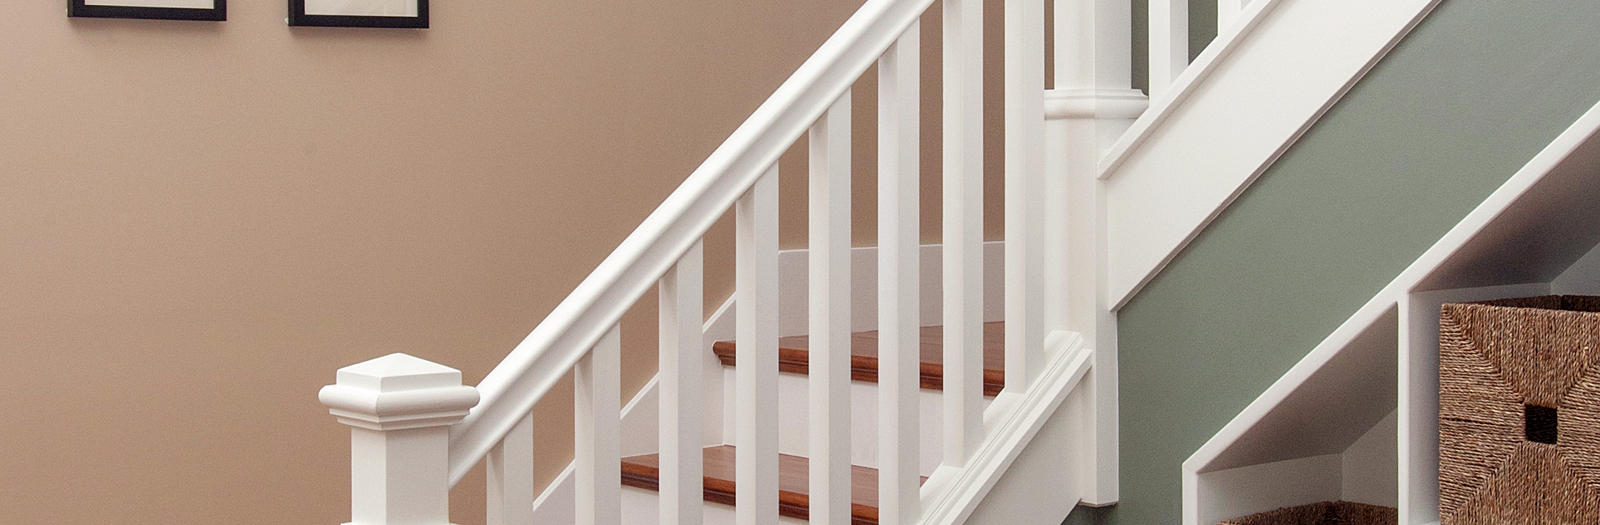 Cape Cod Staircase with built in storage under stairs